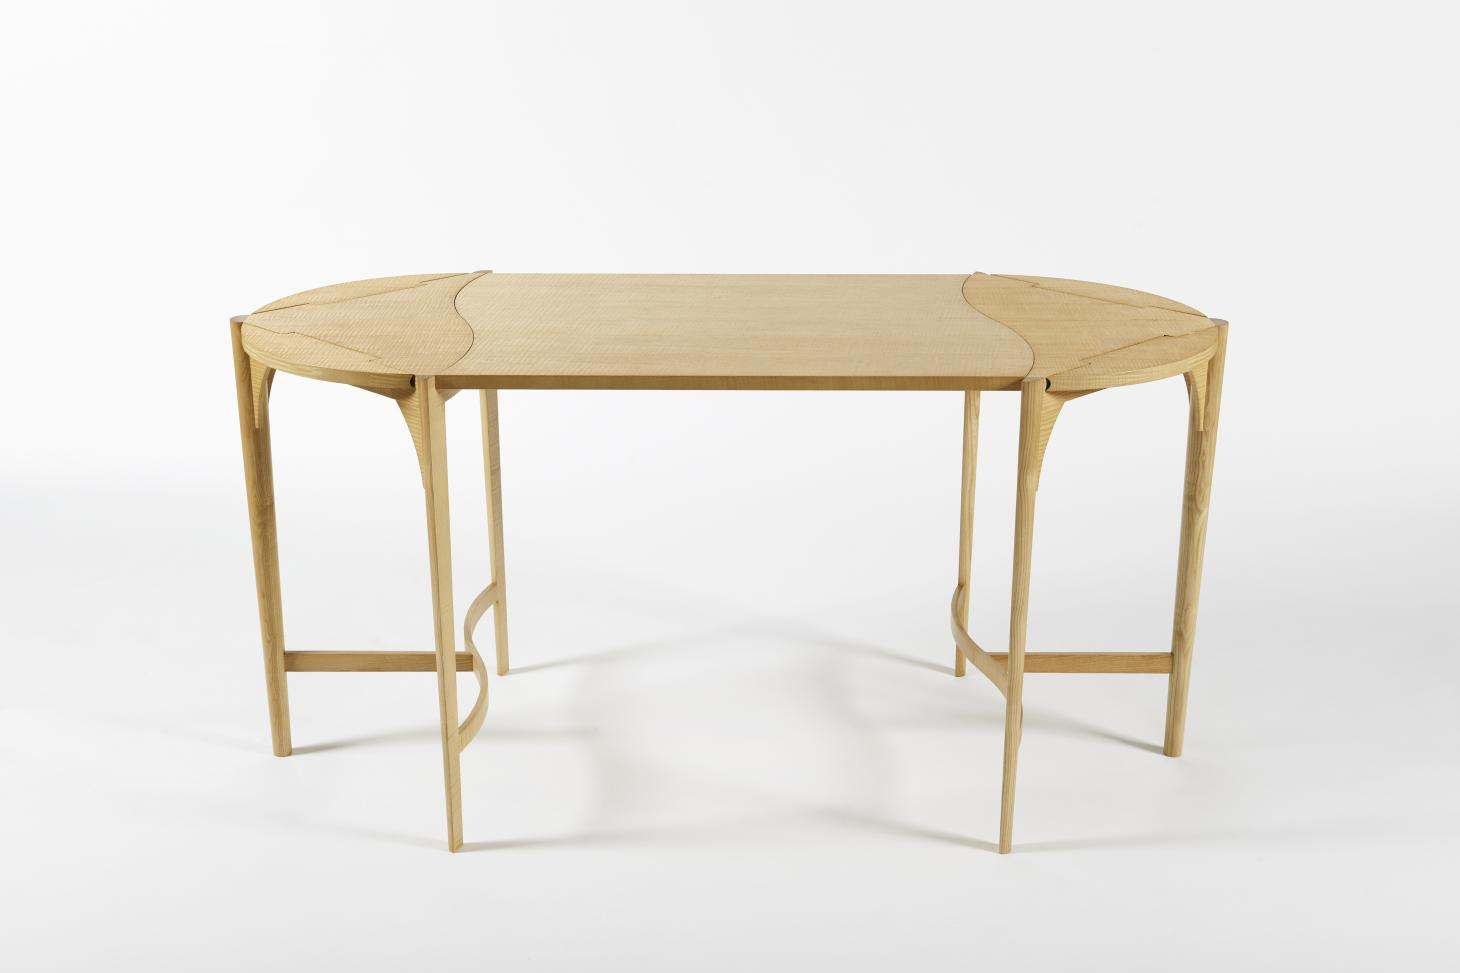 Okeanis table by Rena Dumas reissued by The Invisible Collection and RDAI